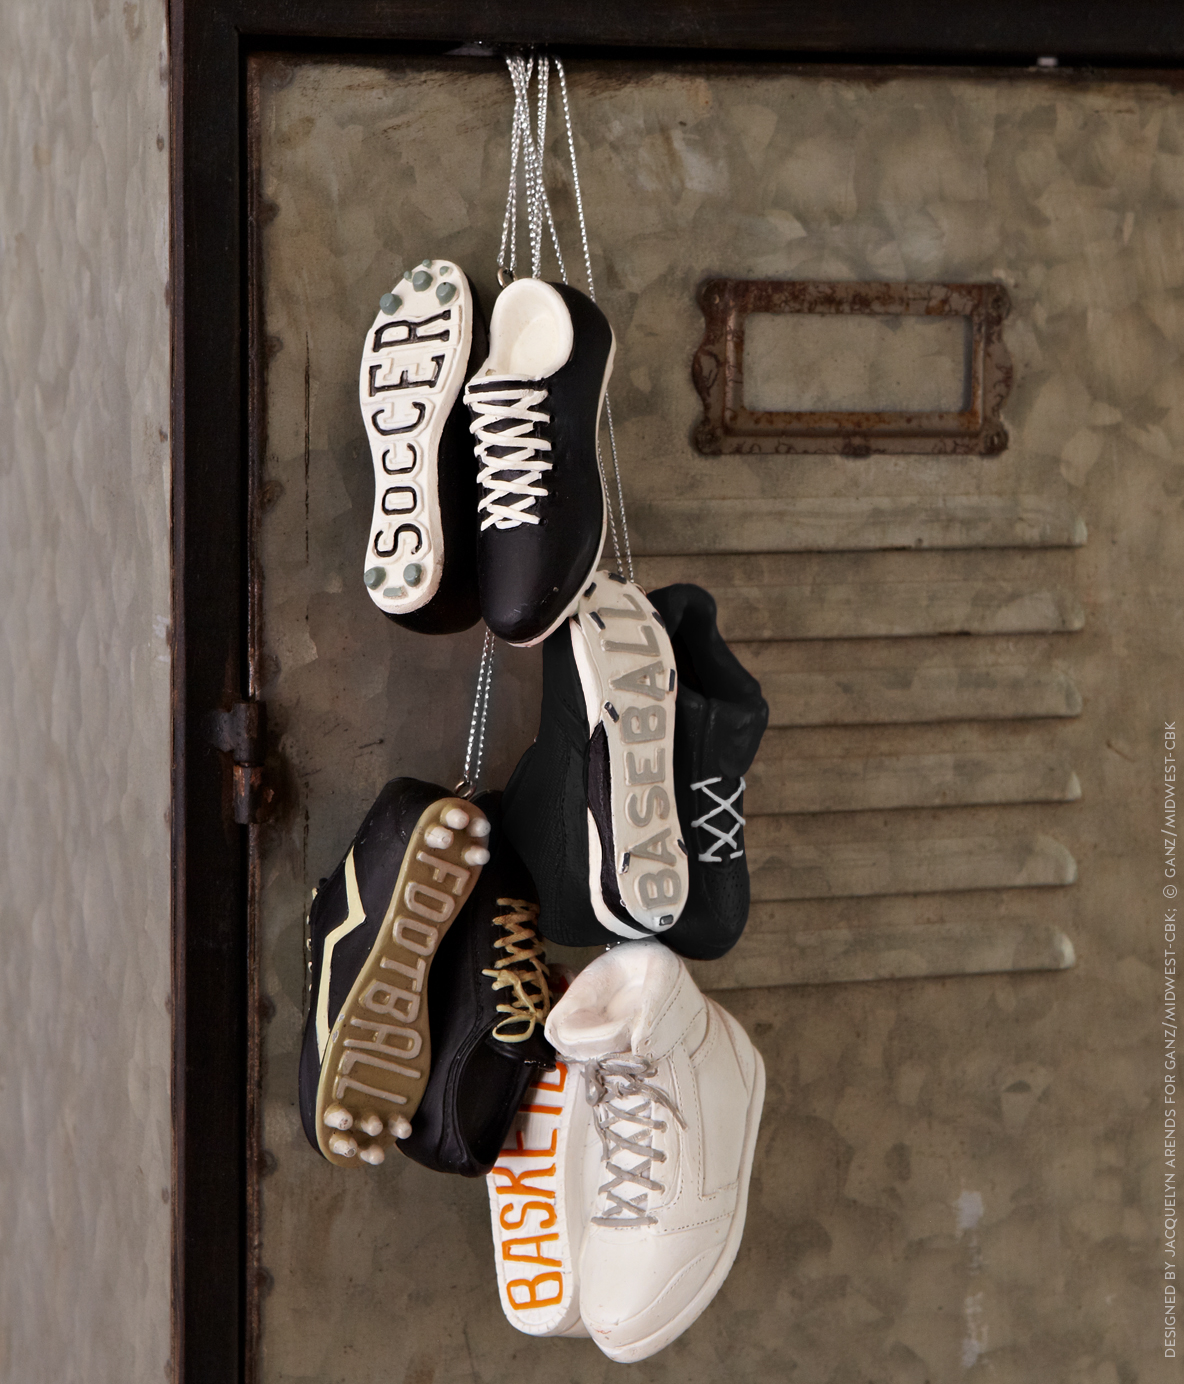 Styled shoot of Specialty Ornaments Athletic Shoes ornaments designed by Jacquelyn Arends; © Ganz/Midwest-CBK 2019